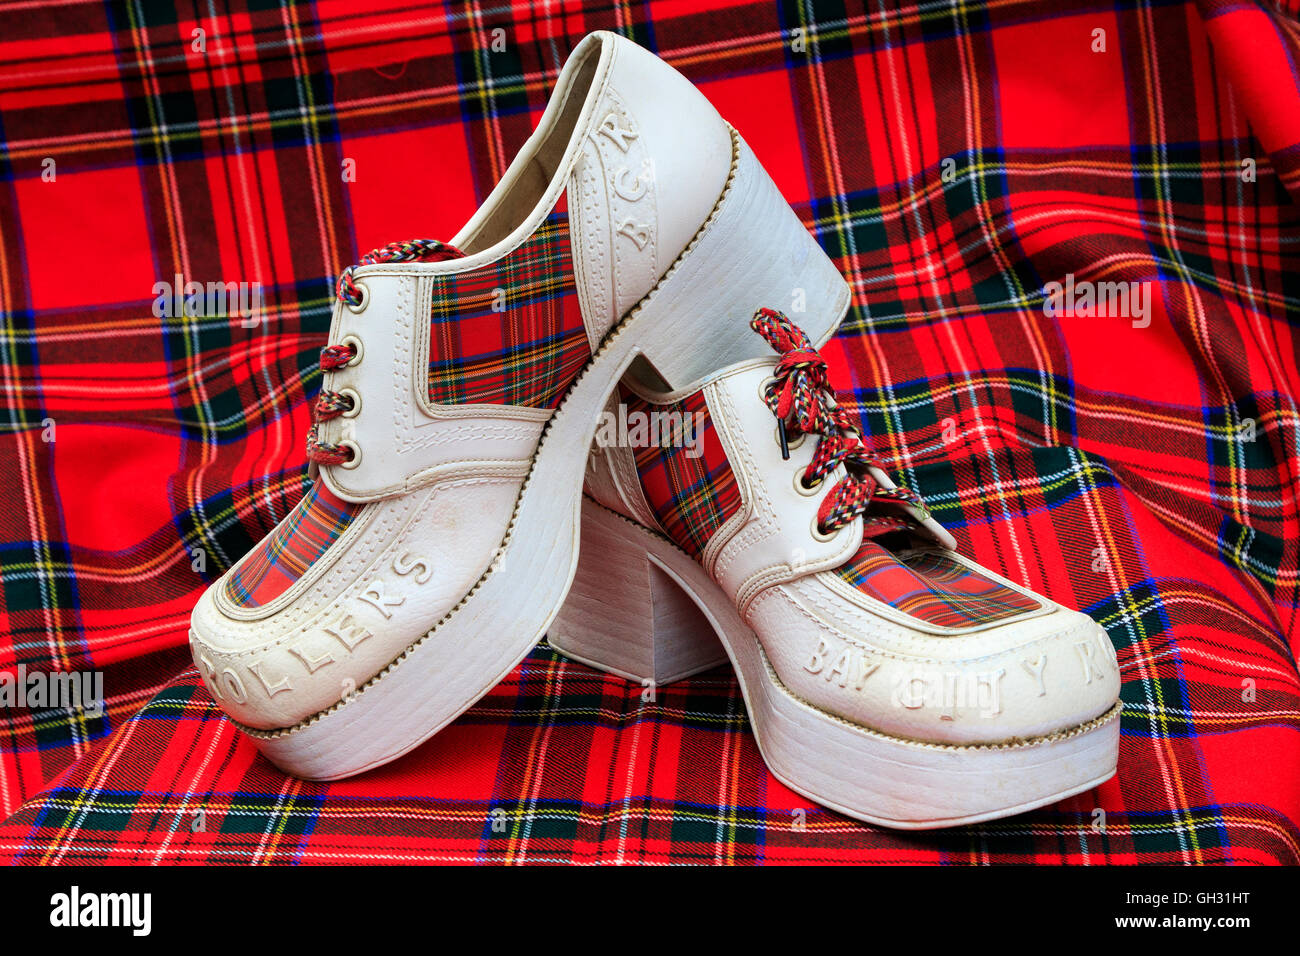 'Used' pair of 'Bay City Rollers' fashion shoes, from 1970's. bay City Rollers was a Scottish - Stock Image